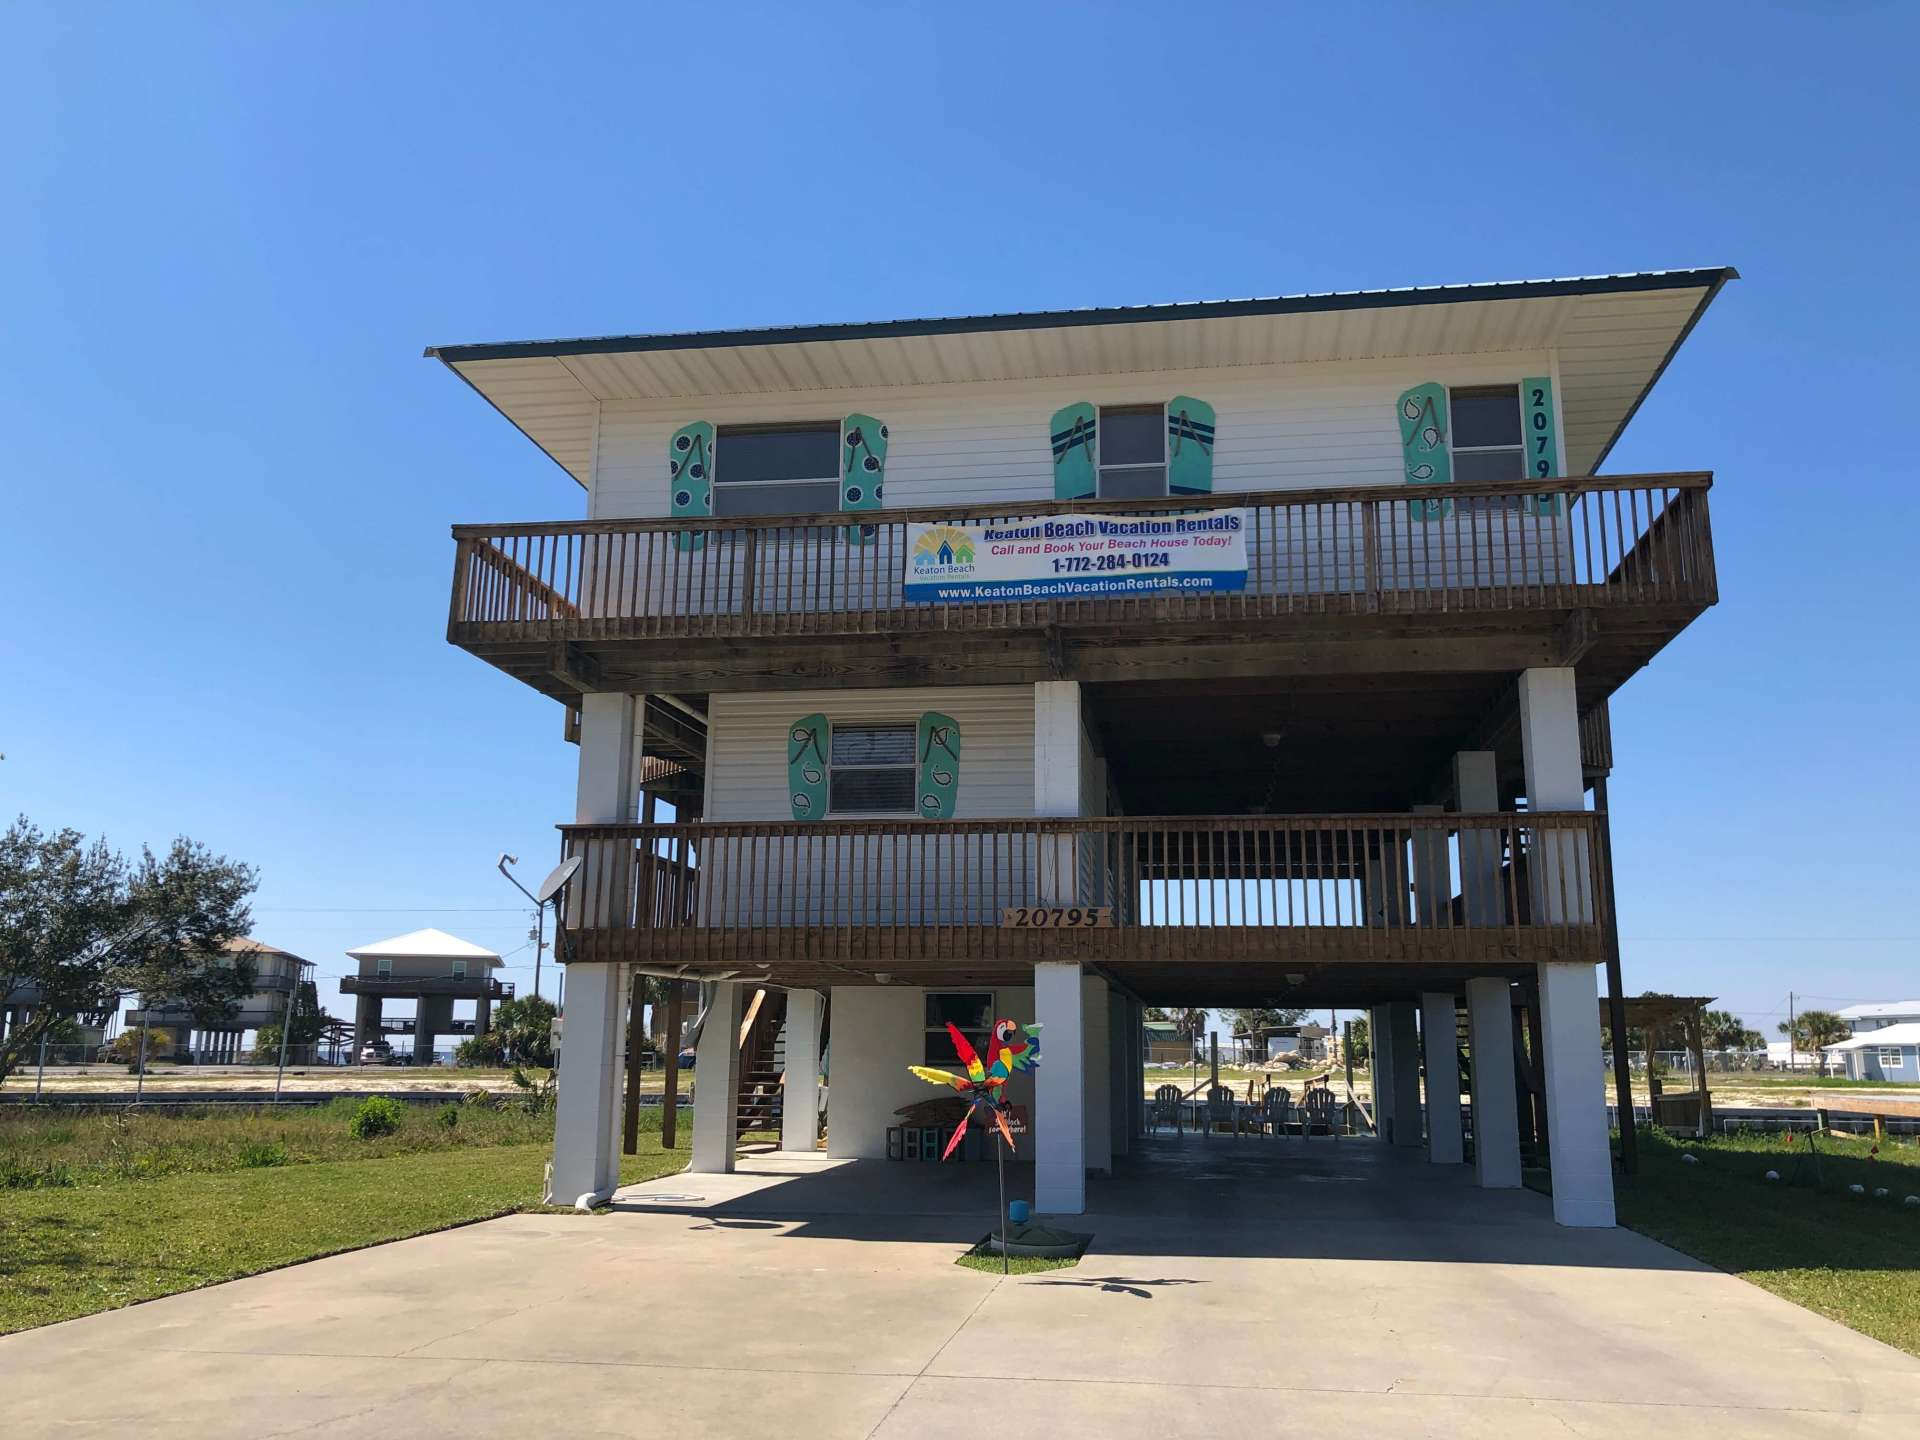 Margaritaville three story vacation rental located on deep water canal